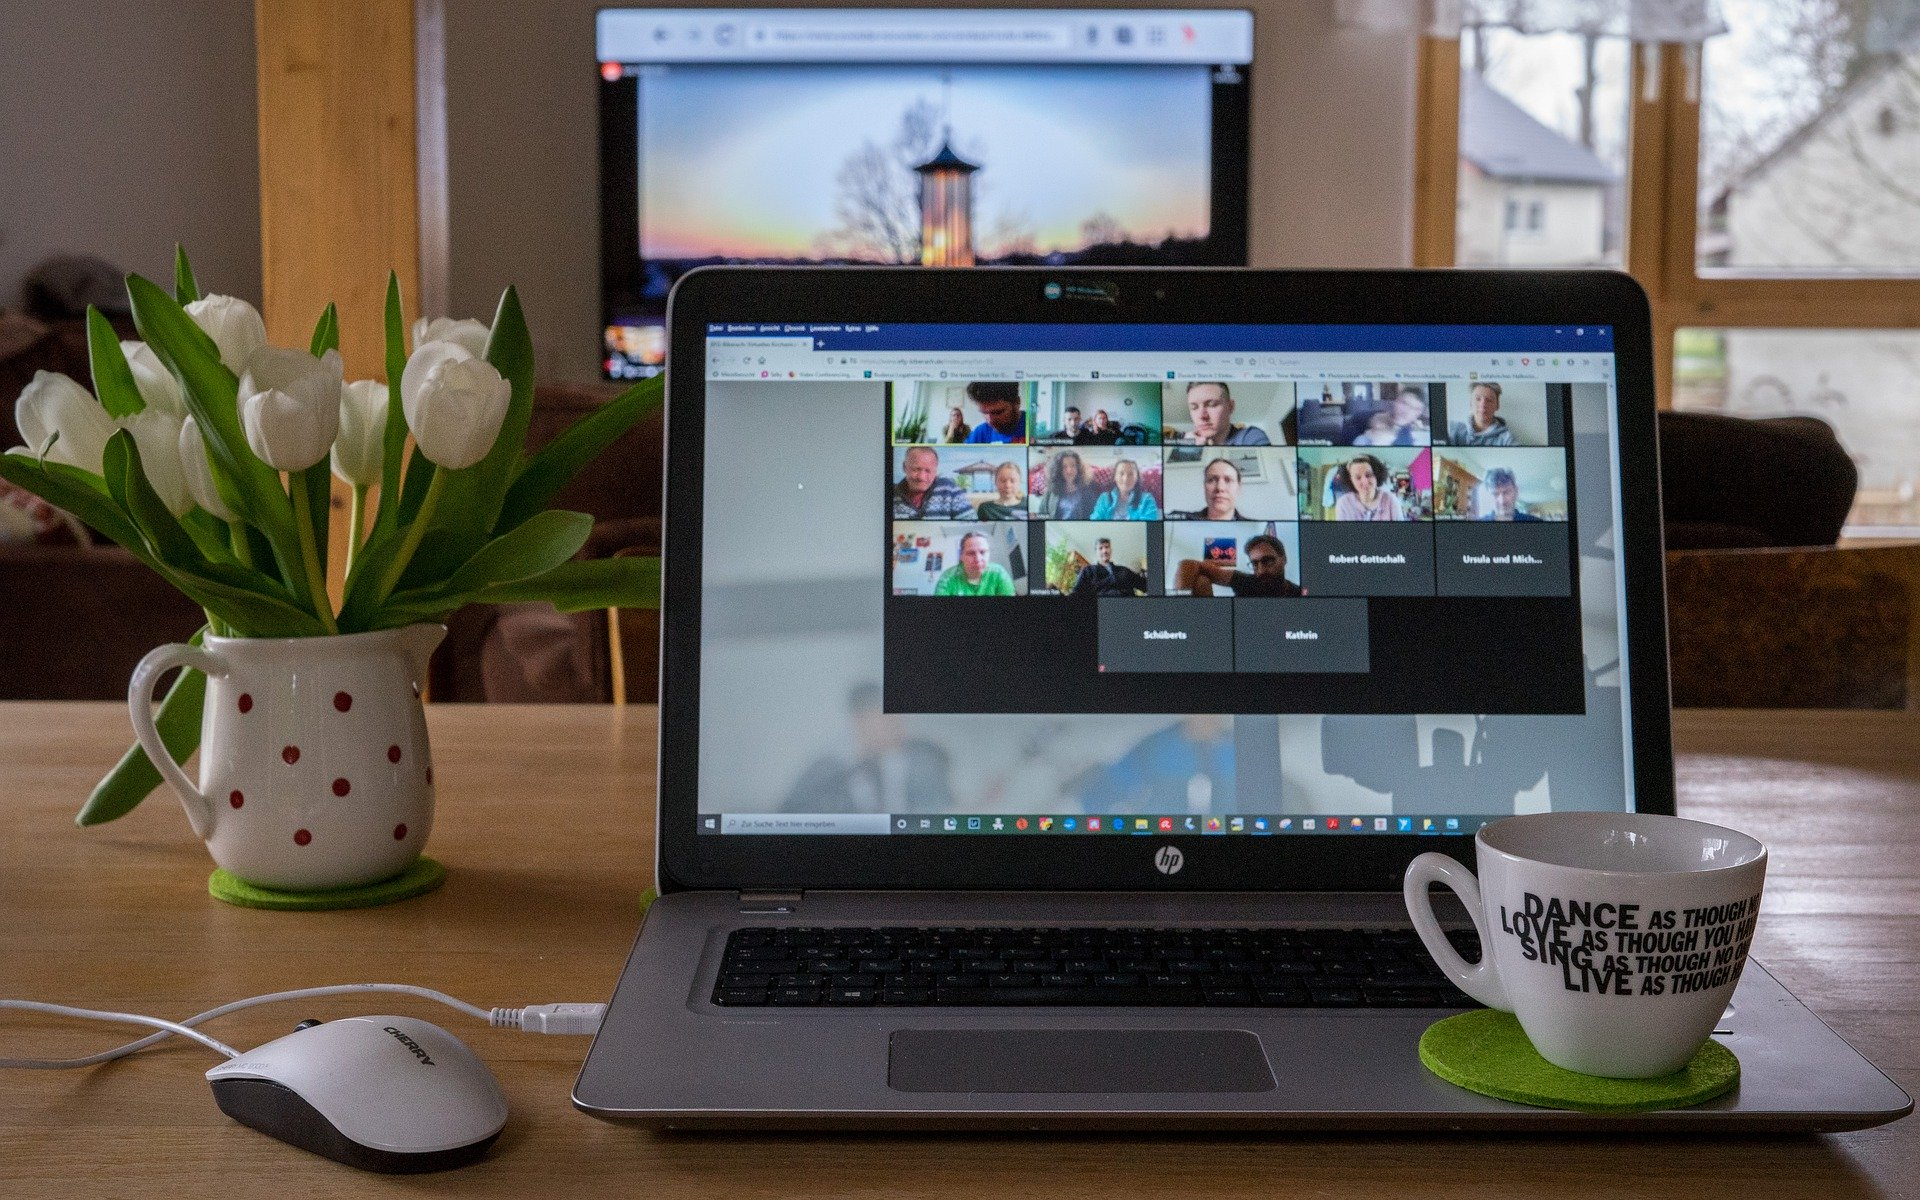 A laptop with a virtual meeting